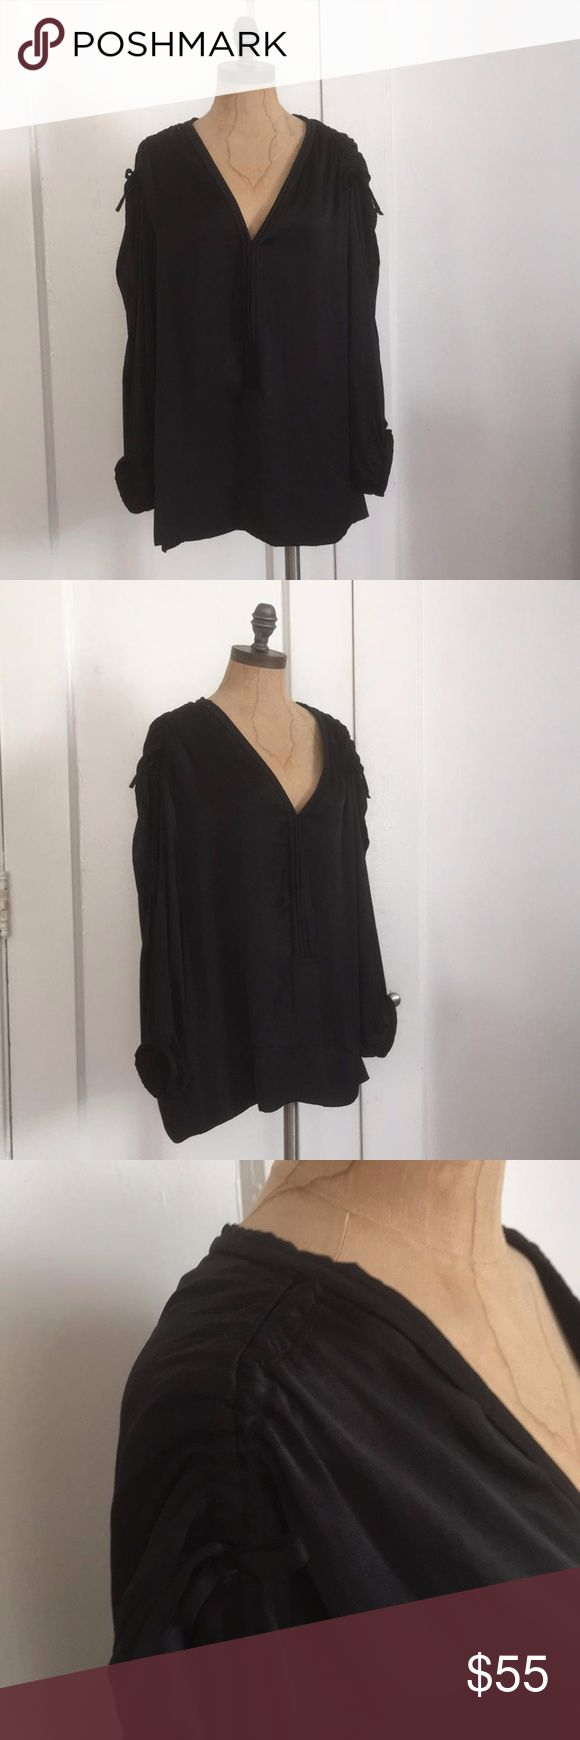 IRO BLACK SHIRT IRO WOVEN SHIRT FEATURES DEEP VE-NECK SHIRRED SHOULDERS AND OPEN SIDE SLEEVES FRONT HOOKS CLOSURE 100%POLYESTER IRO SIZE 1 FITS REG SIZE SMALL RELAXED FIT PIT TO PIT 21'' LENGTH 22'' 3.4 SLEEVES TP-723 IRO Tops Blouses